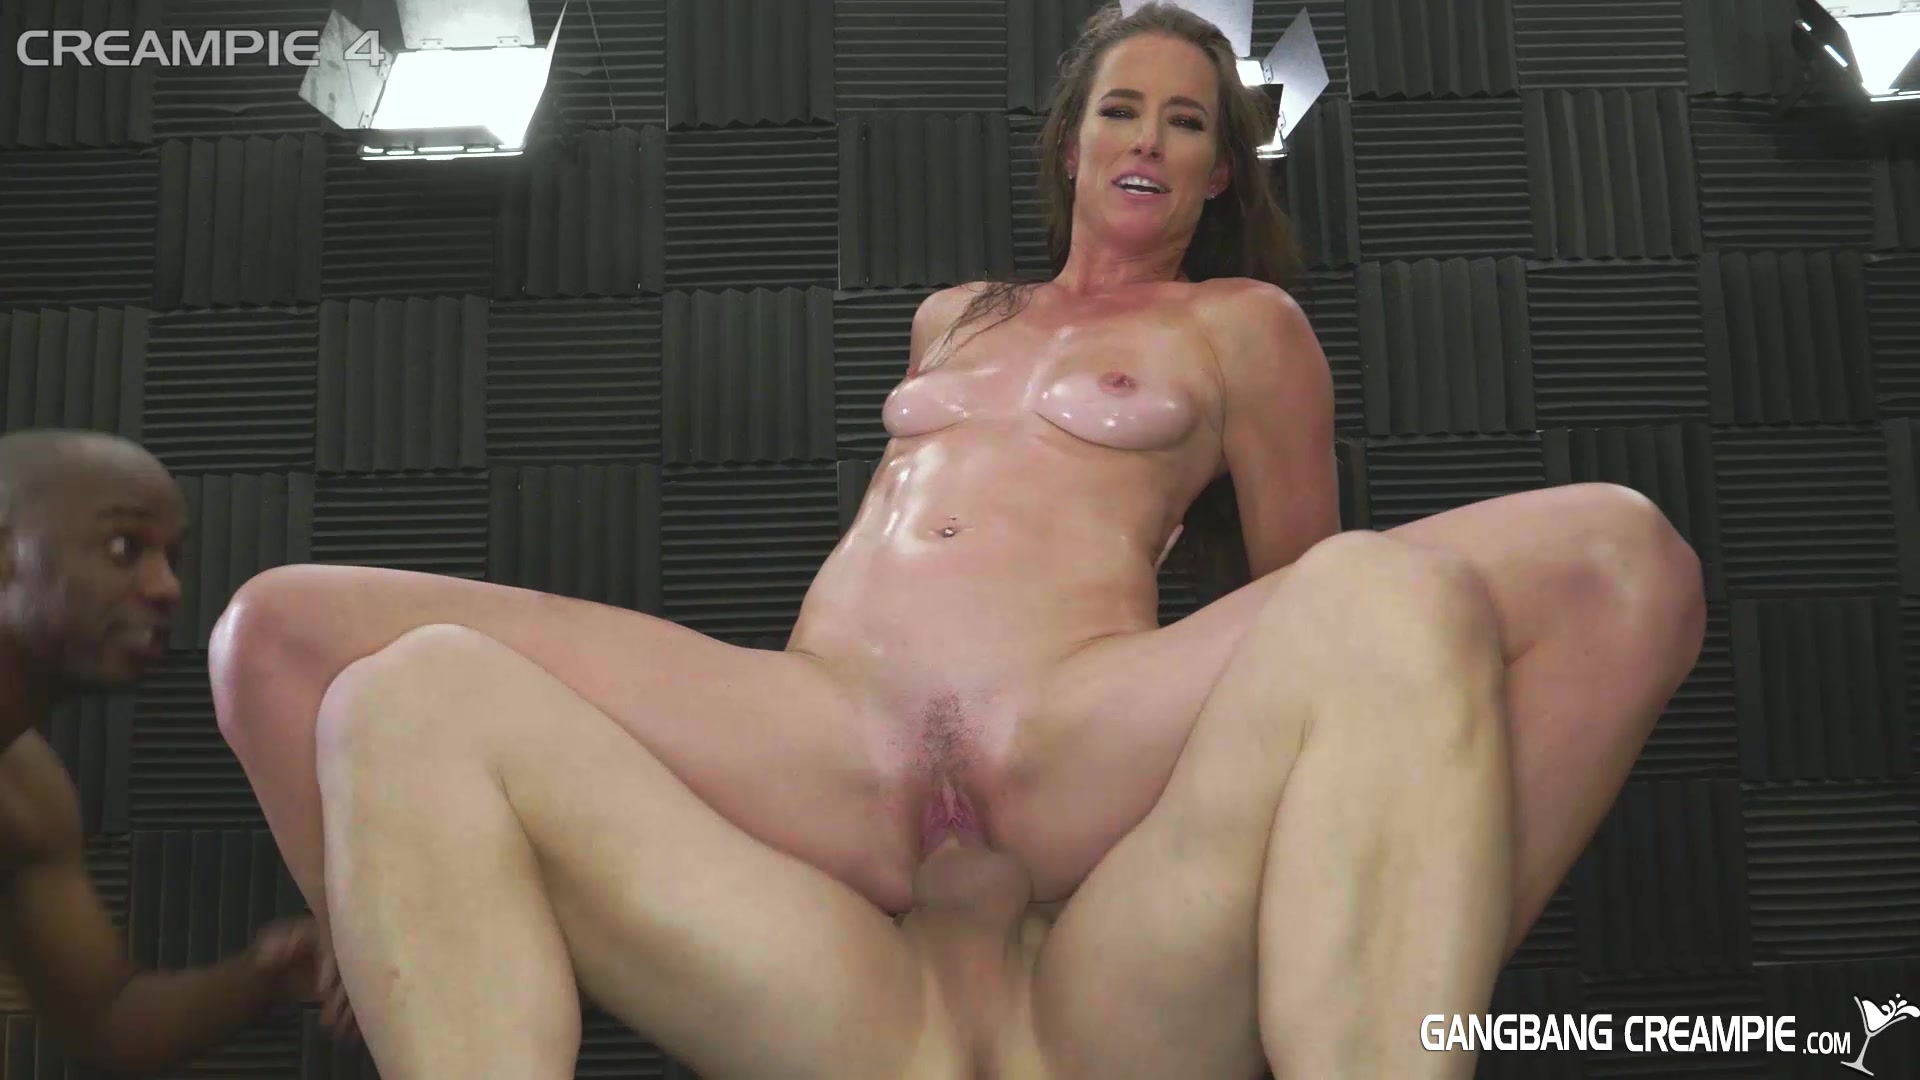 Gangbang Creampie Fuck And Fill My Wife, Please  Aziani -3798